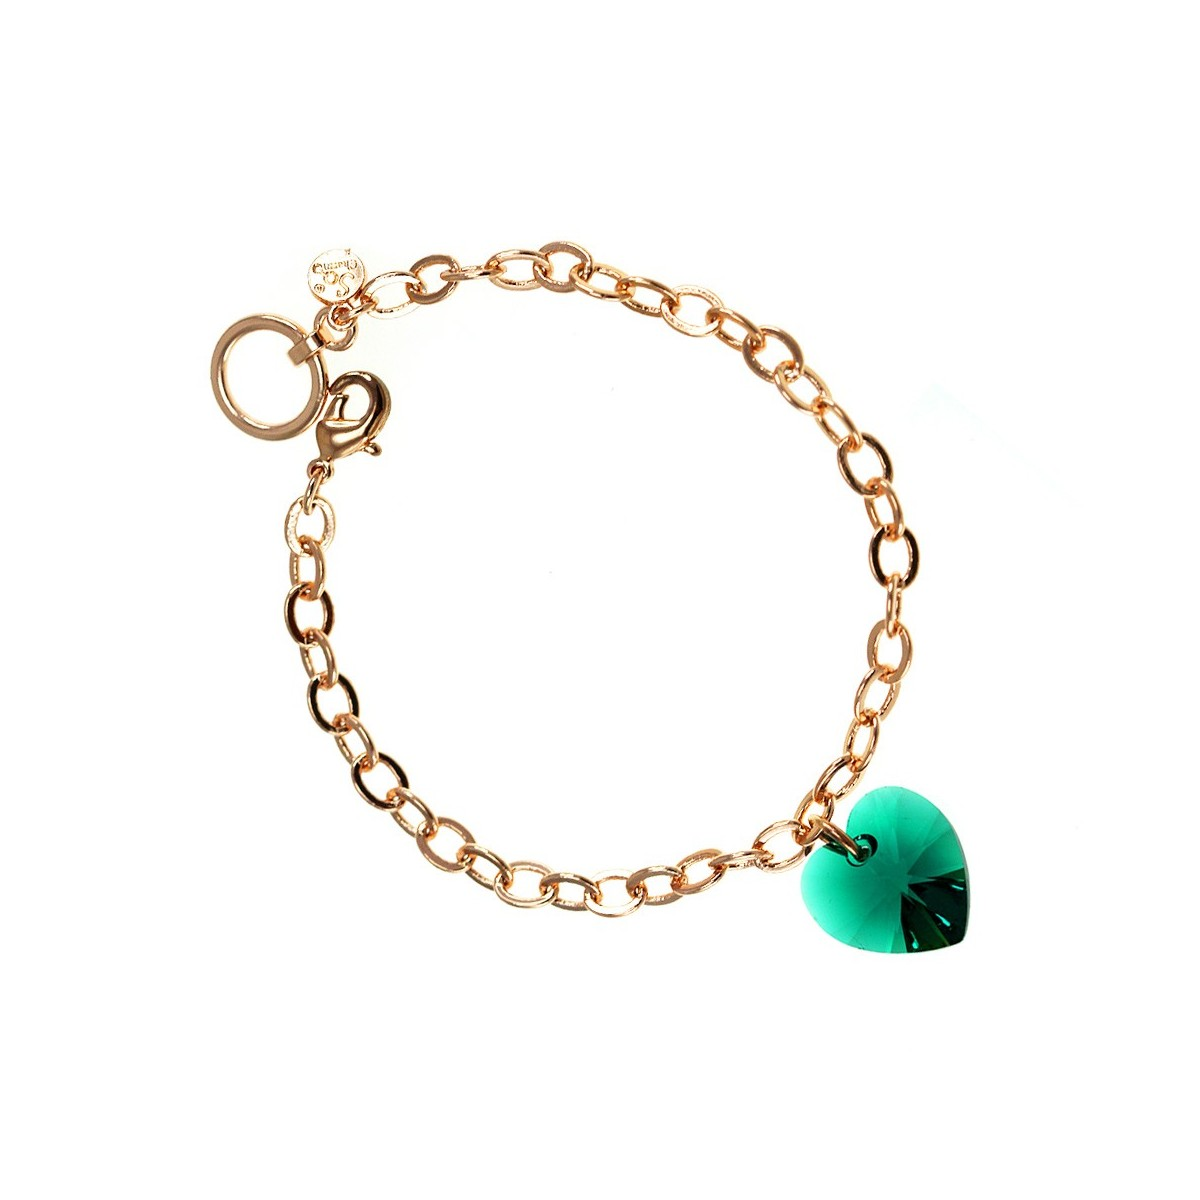 Bracelet plaqué or rose et coeur vert  So Charm made with crystal from Swarovski